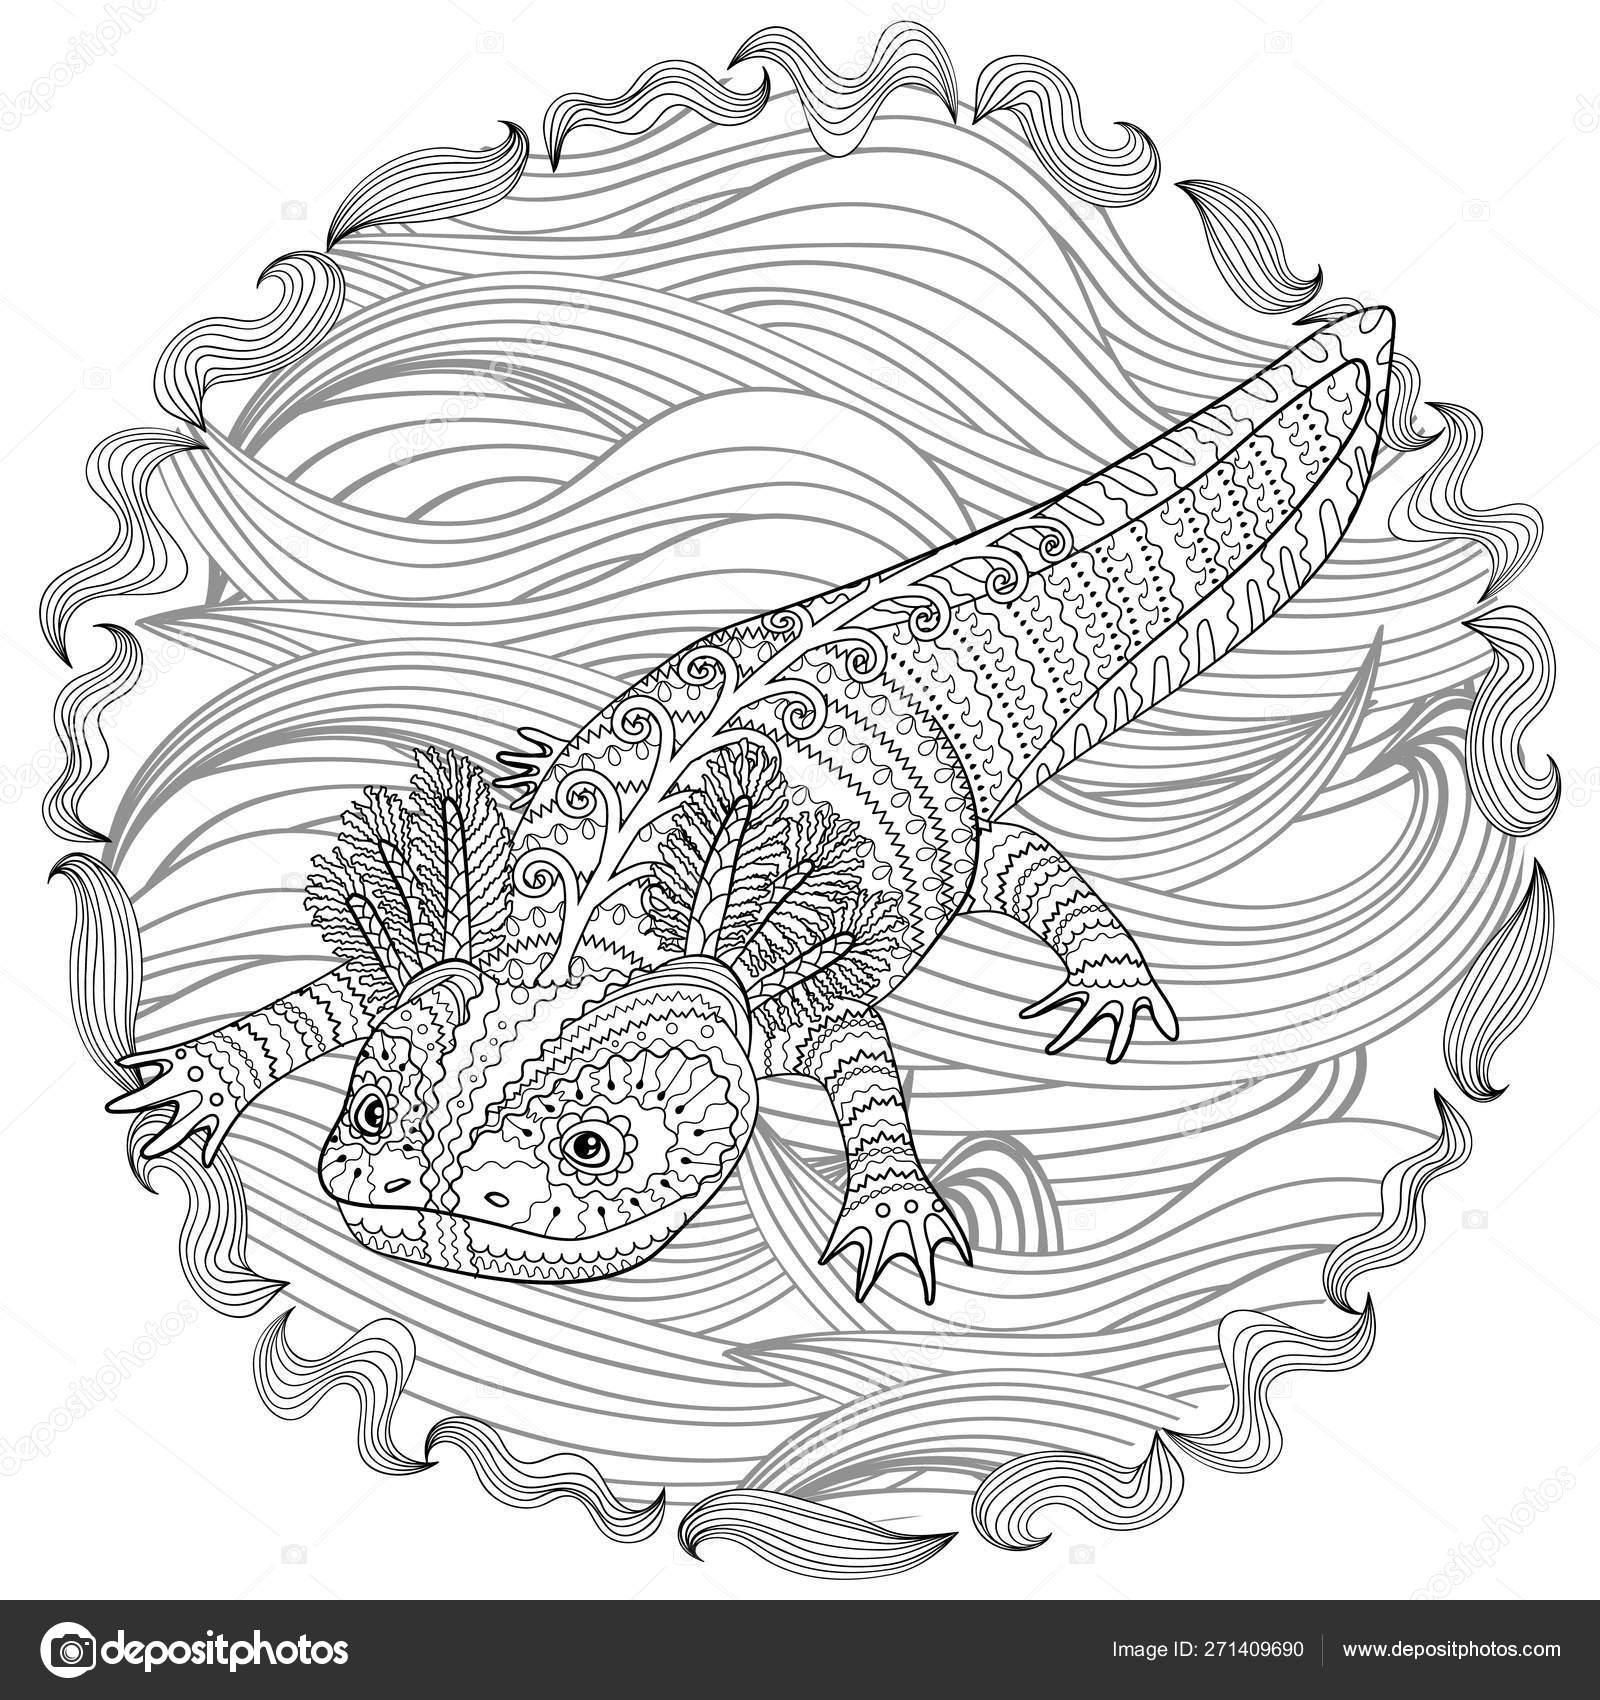 38 Axolotl Coloring Page Coloring Pages Printable Coloring Color